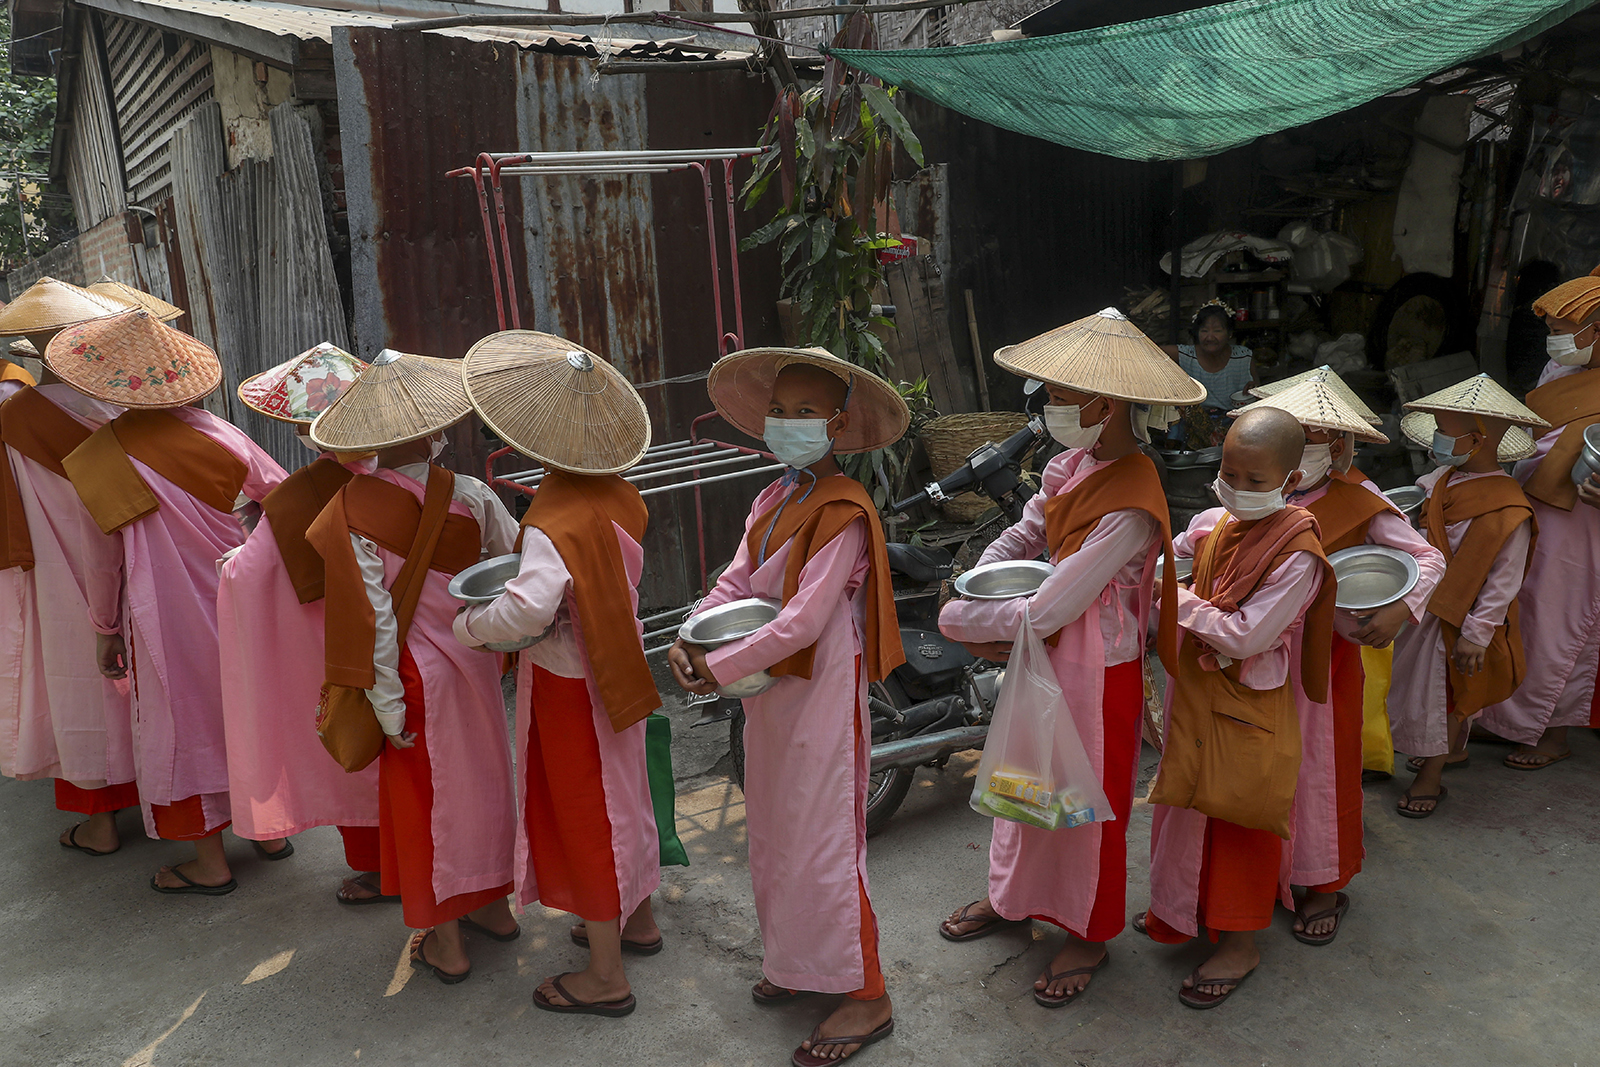 """Buddhist nuns collect alms, or offerings, in Mandalay, Myanmar, Thursday, March 11, 2021. The U.N. Security Council unanimously called for a reversal of the military coup in Myanmar on Wednesday, strongly condemning the violence against peaceful protesters and calling for """"utmost restraint"""" by the military. (AP Photo)"""